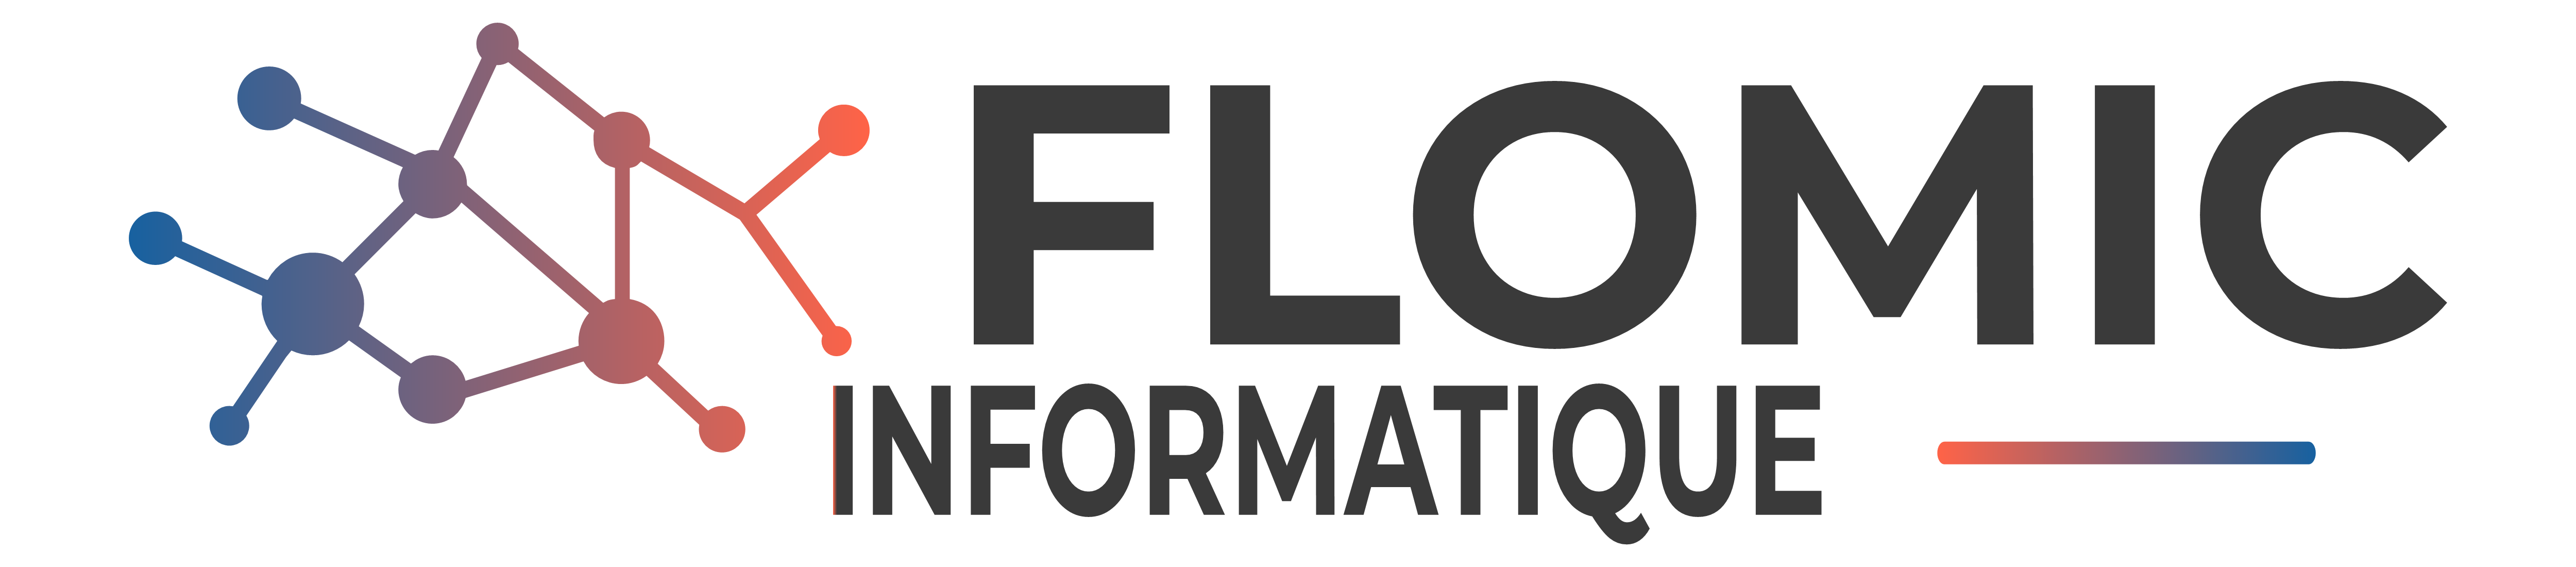 FLOMIC Informatique